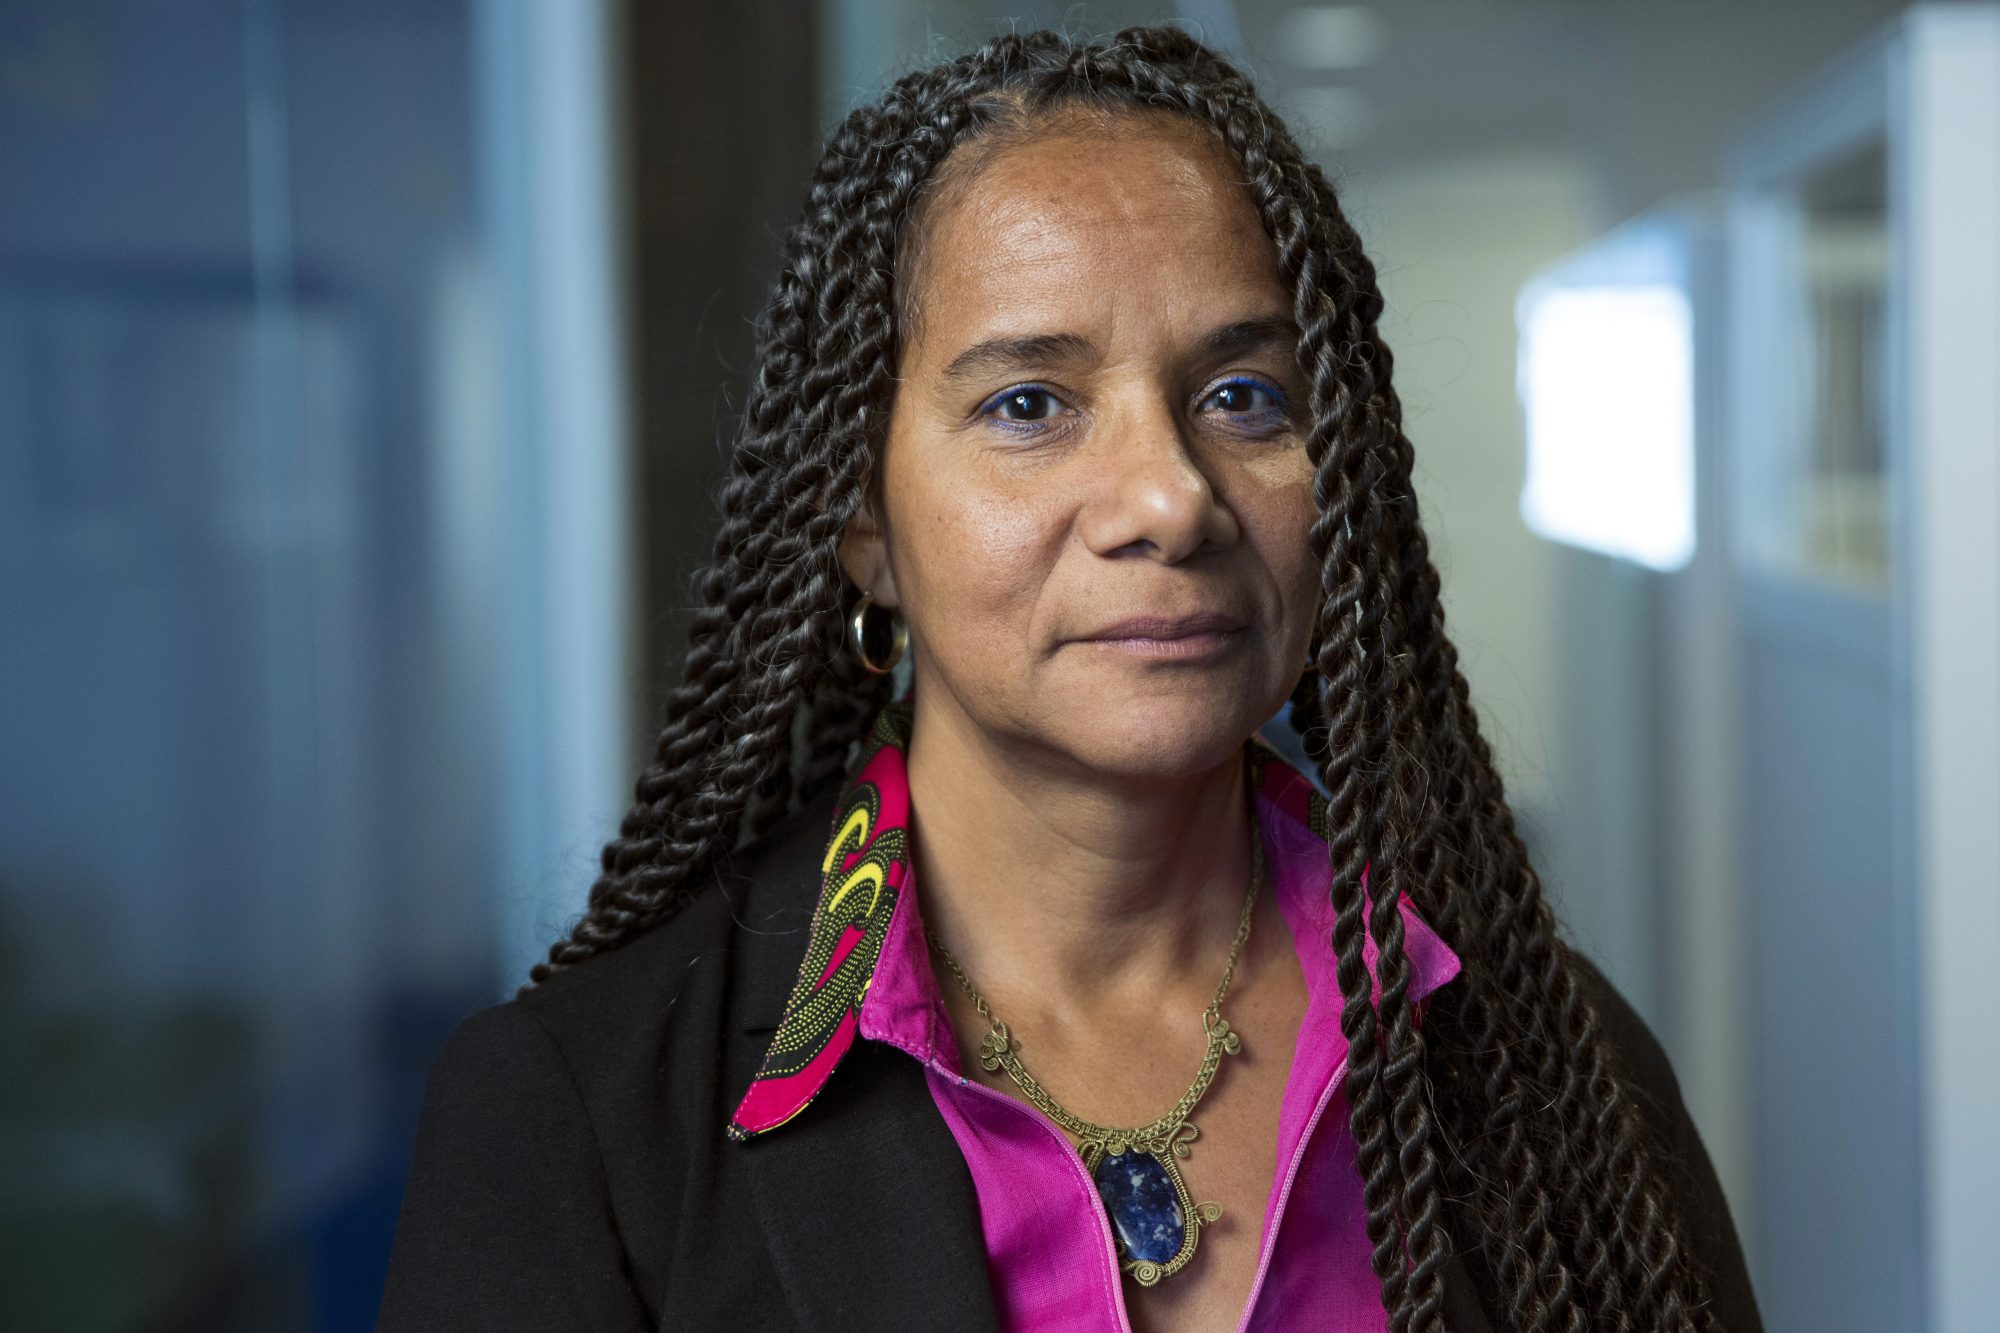 """From where I stand: Afro-descendent women of Colombia rise for justice"" – Charo Mina-Rojas Interview with UN Women"